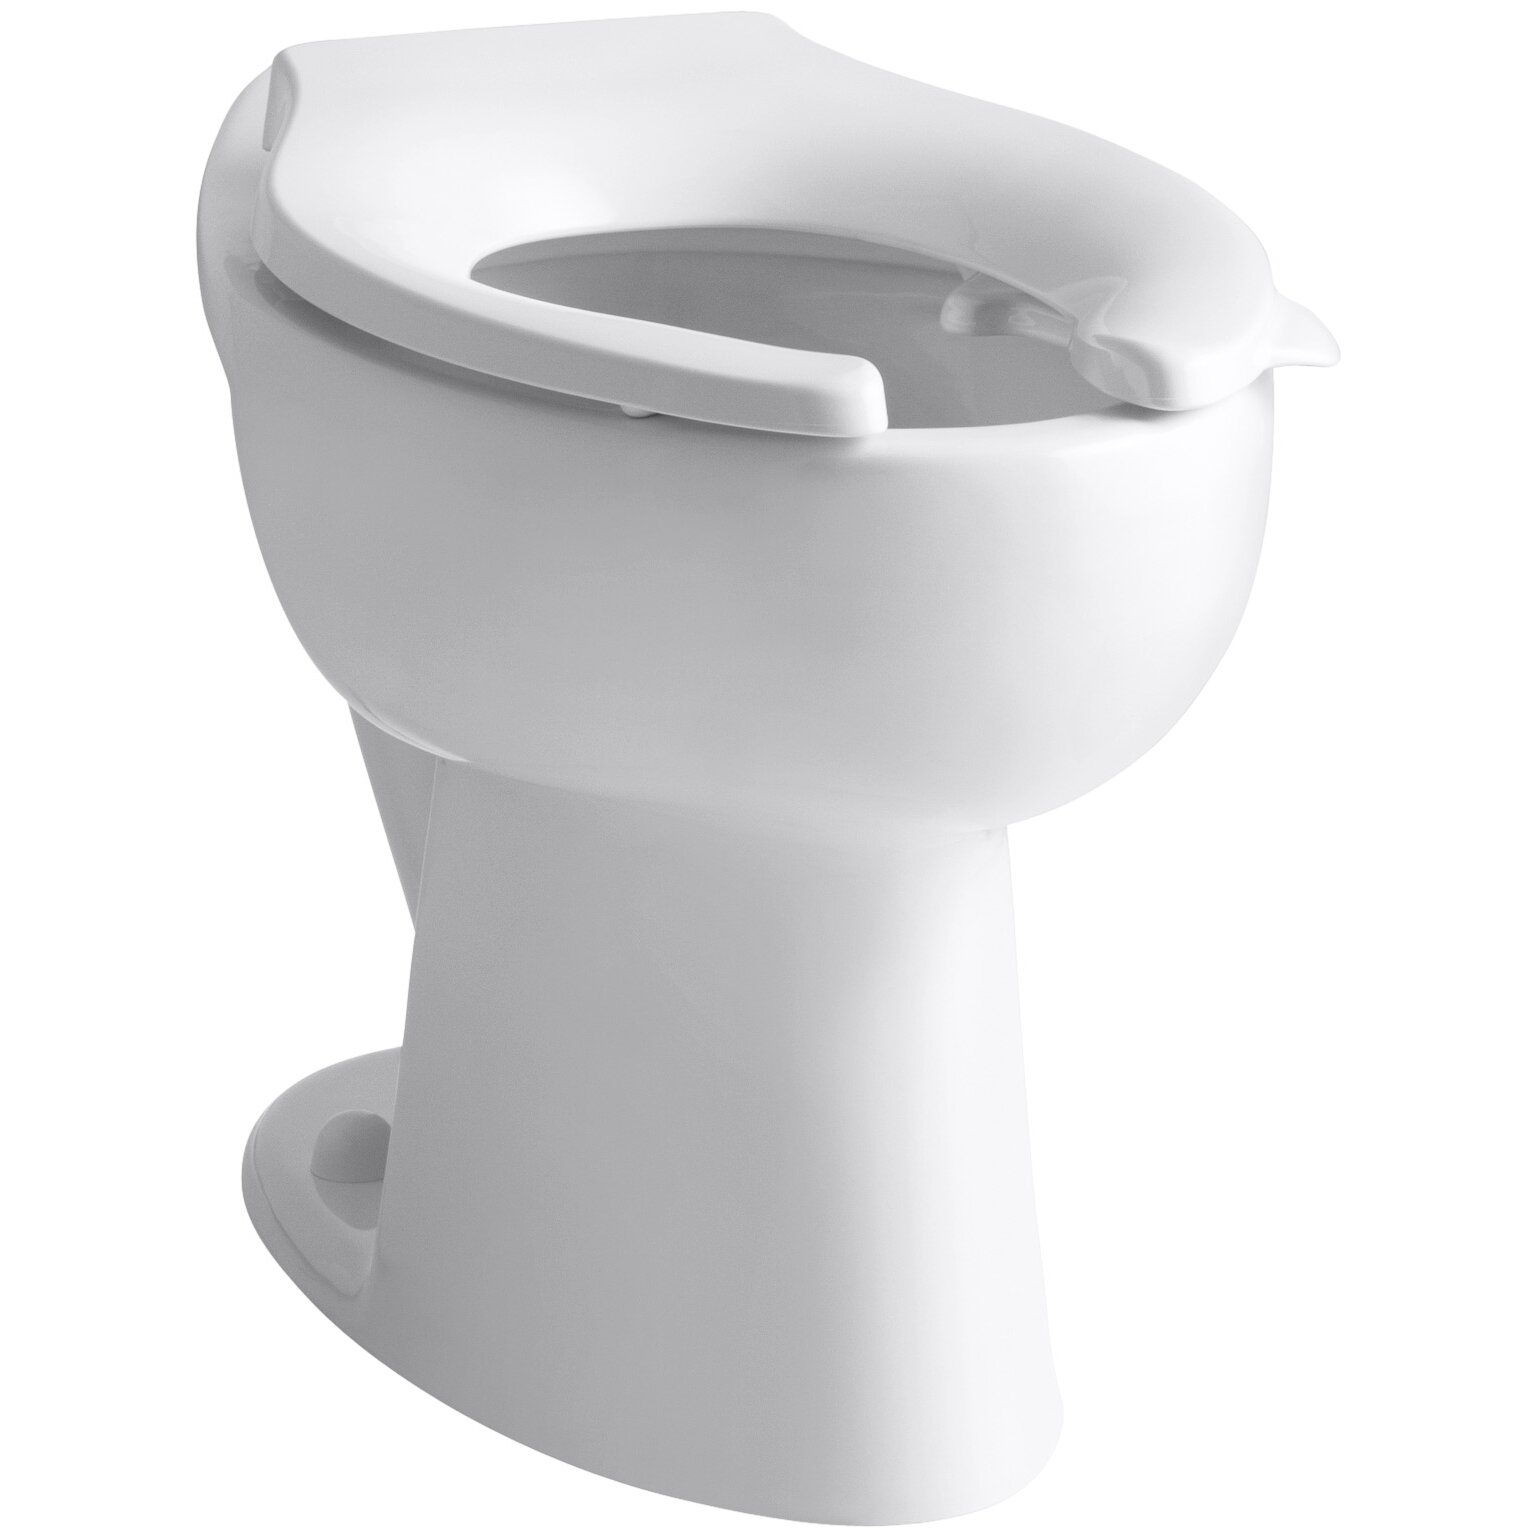 Highcrest 1 6 Gpf 16 1 2 Quot Ada Elongated Toilet Bowl With